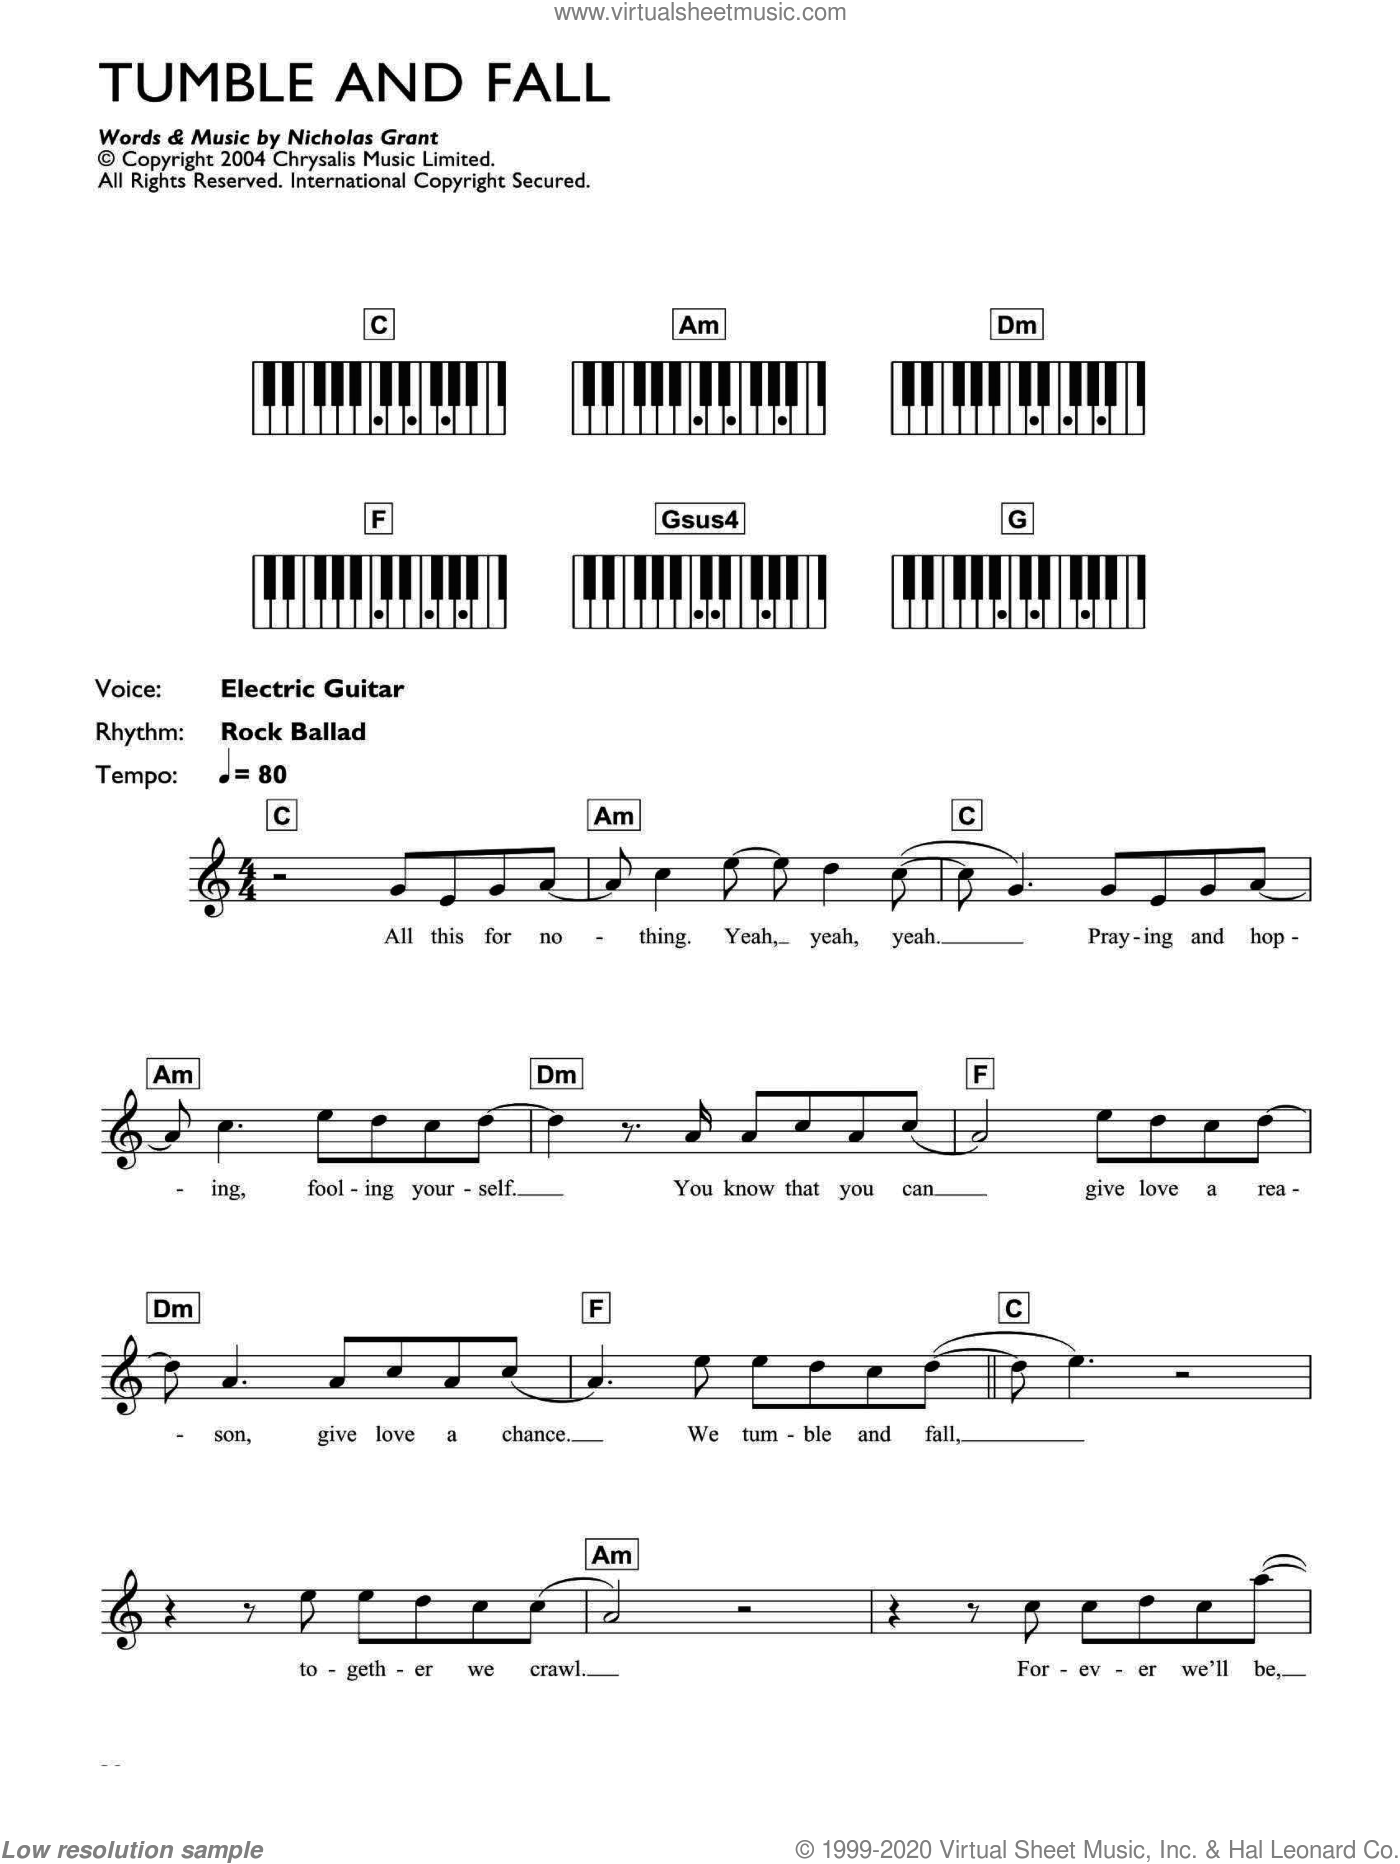 Tumble And Fall sheet music for piano solo (chords, lyrics, melody) by Grant Nicholas